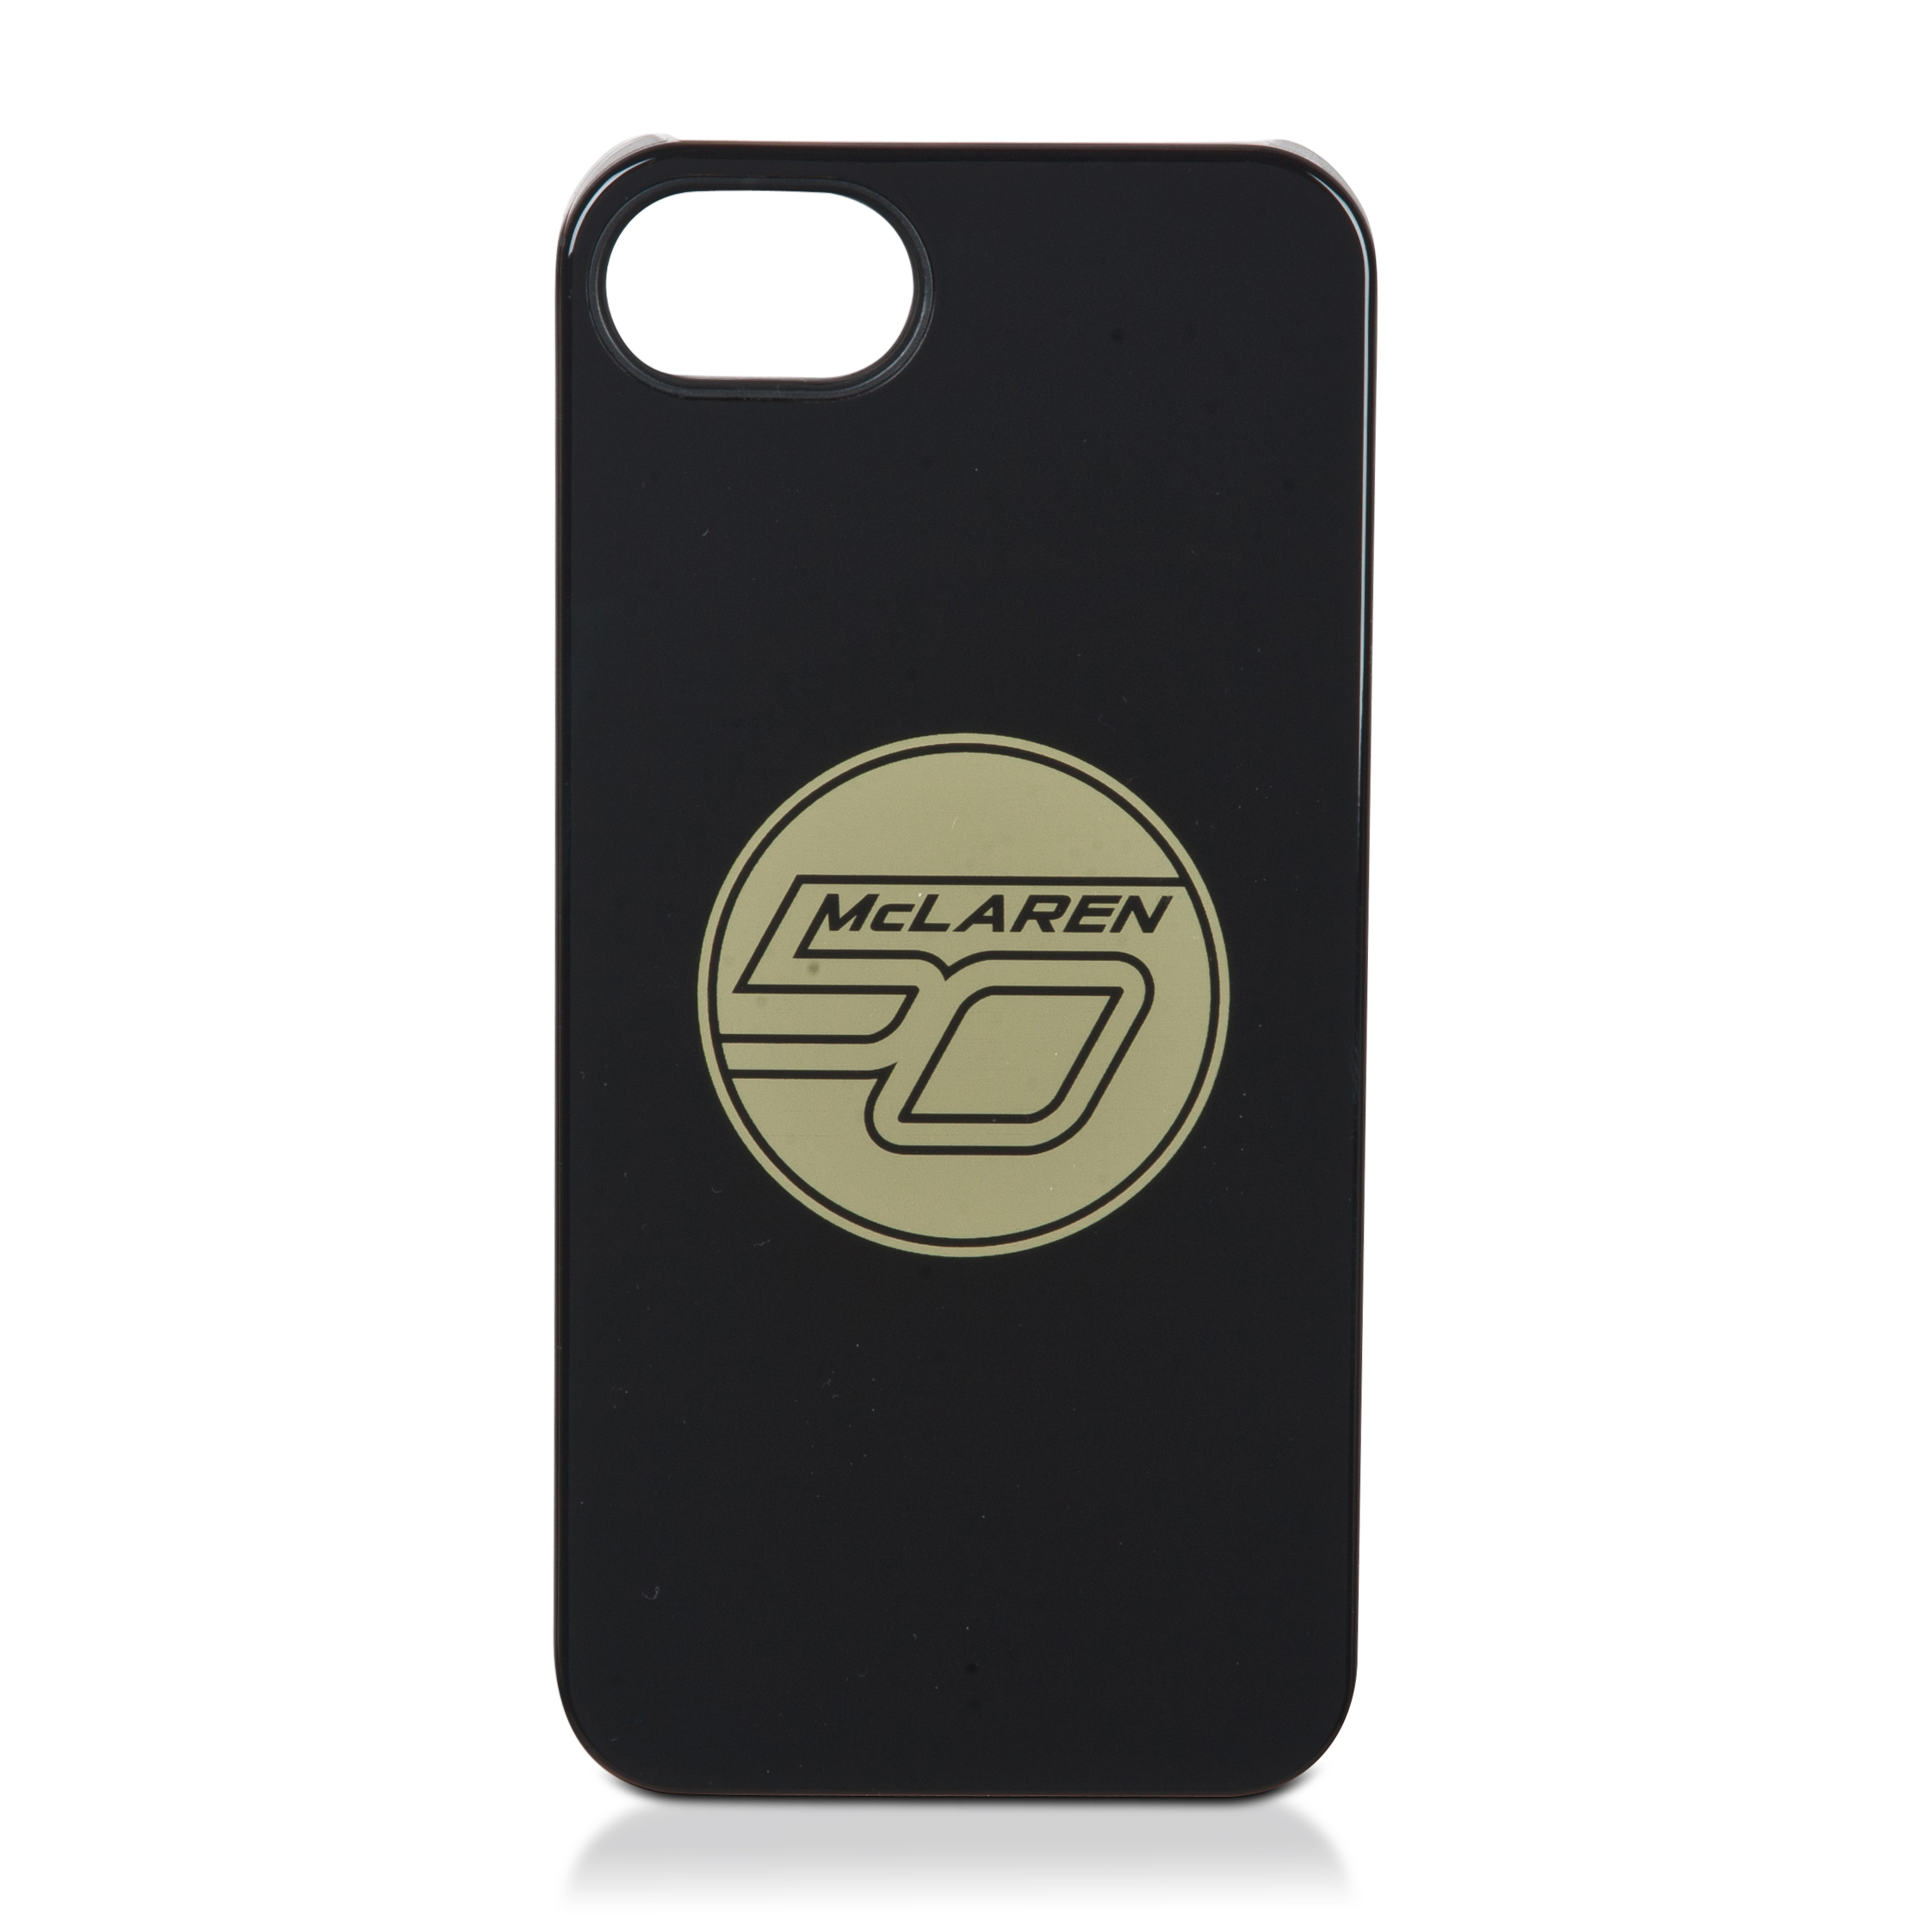 Vodafone McLaren Mercedes 50th Anniversary Snap Case for iPhone 5 Black